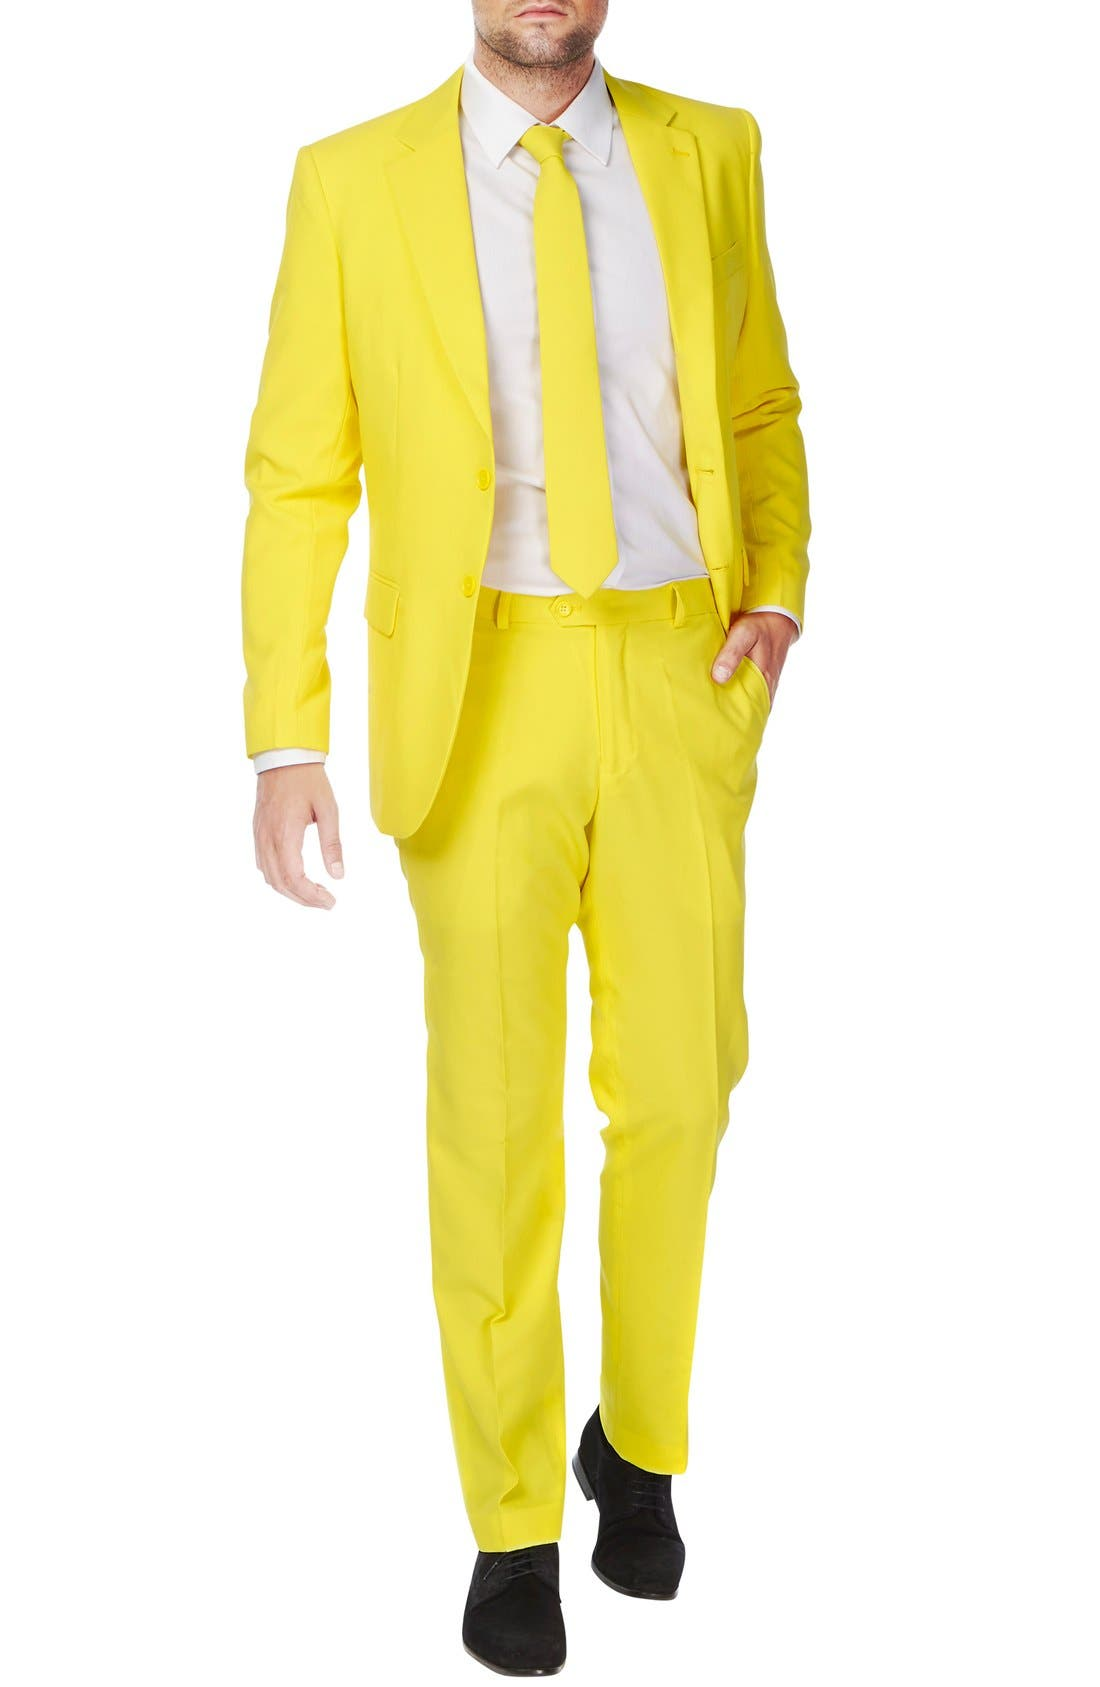 'Yellow Fellow' Trim Fit Two-Piece Suit with Tie,                         Main,                         color, 700